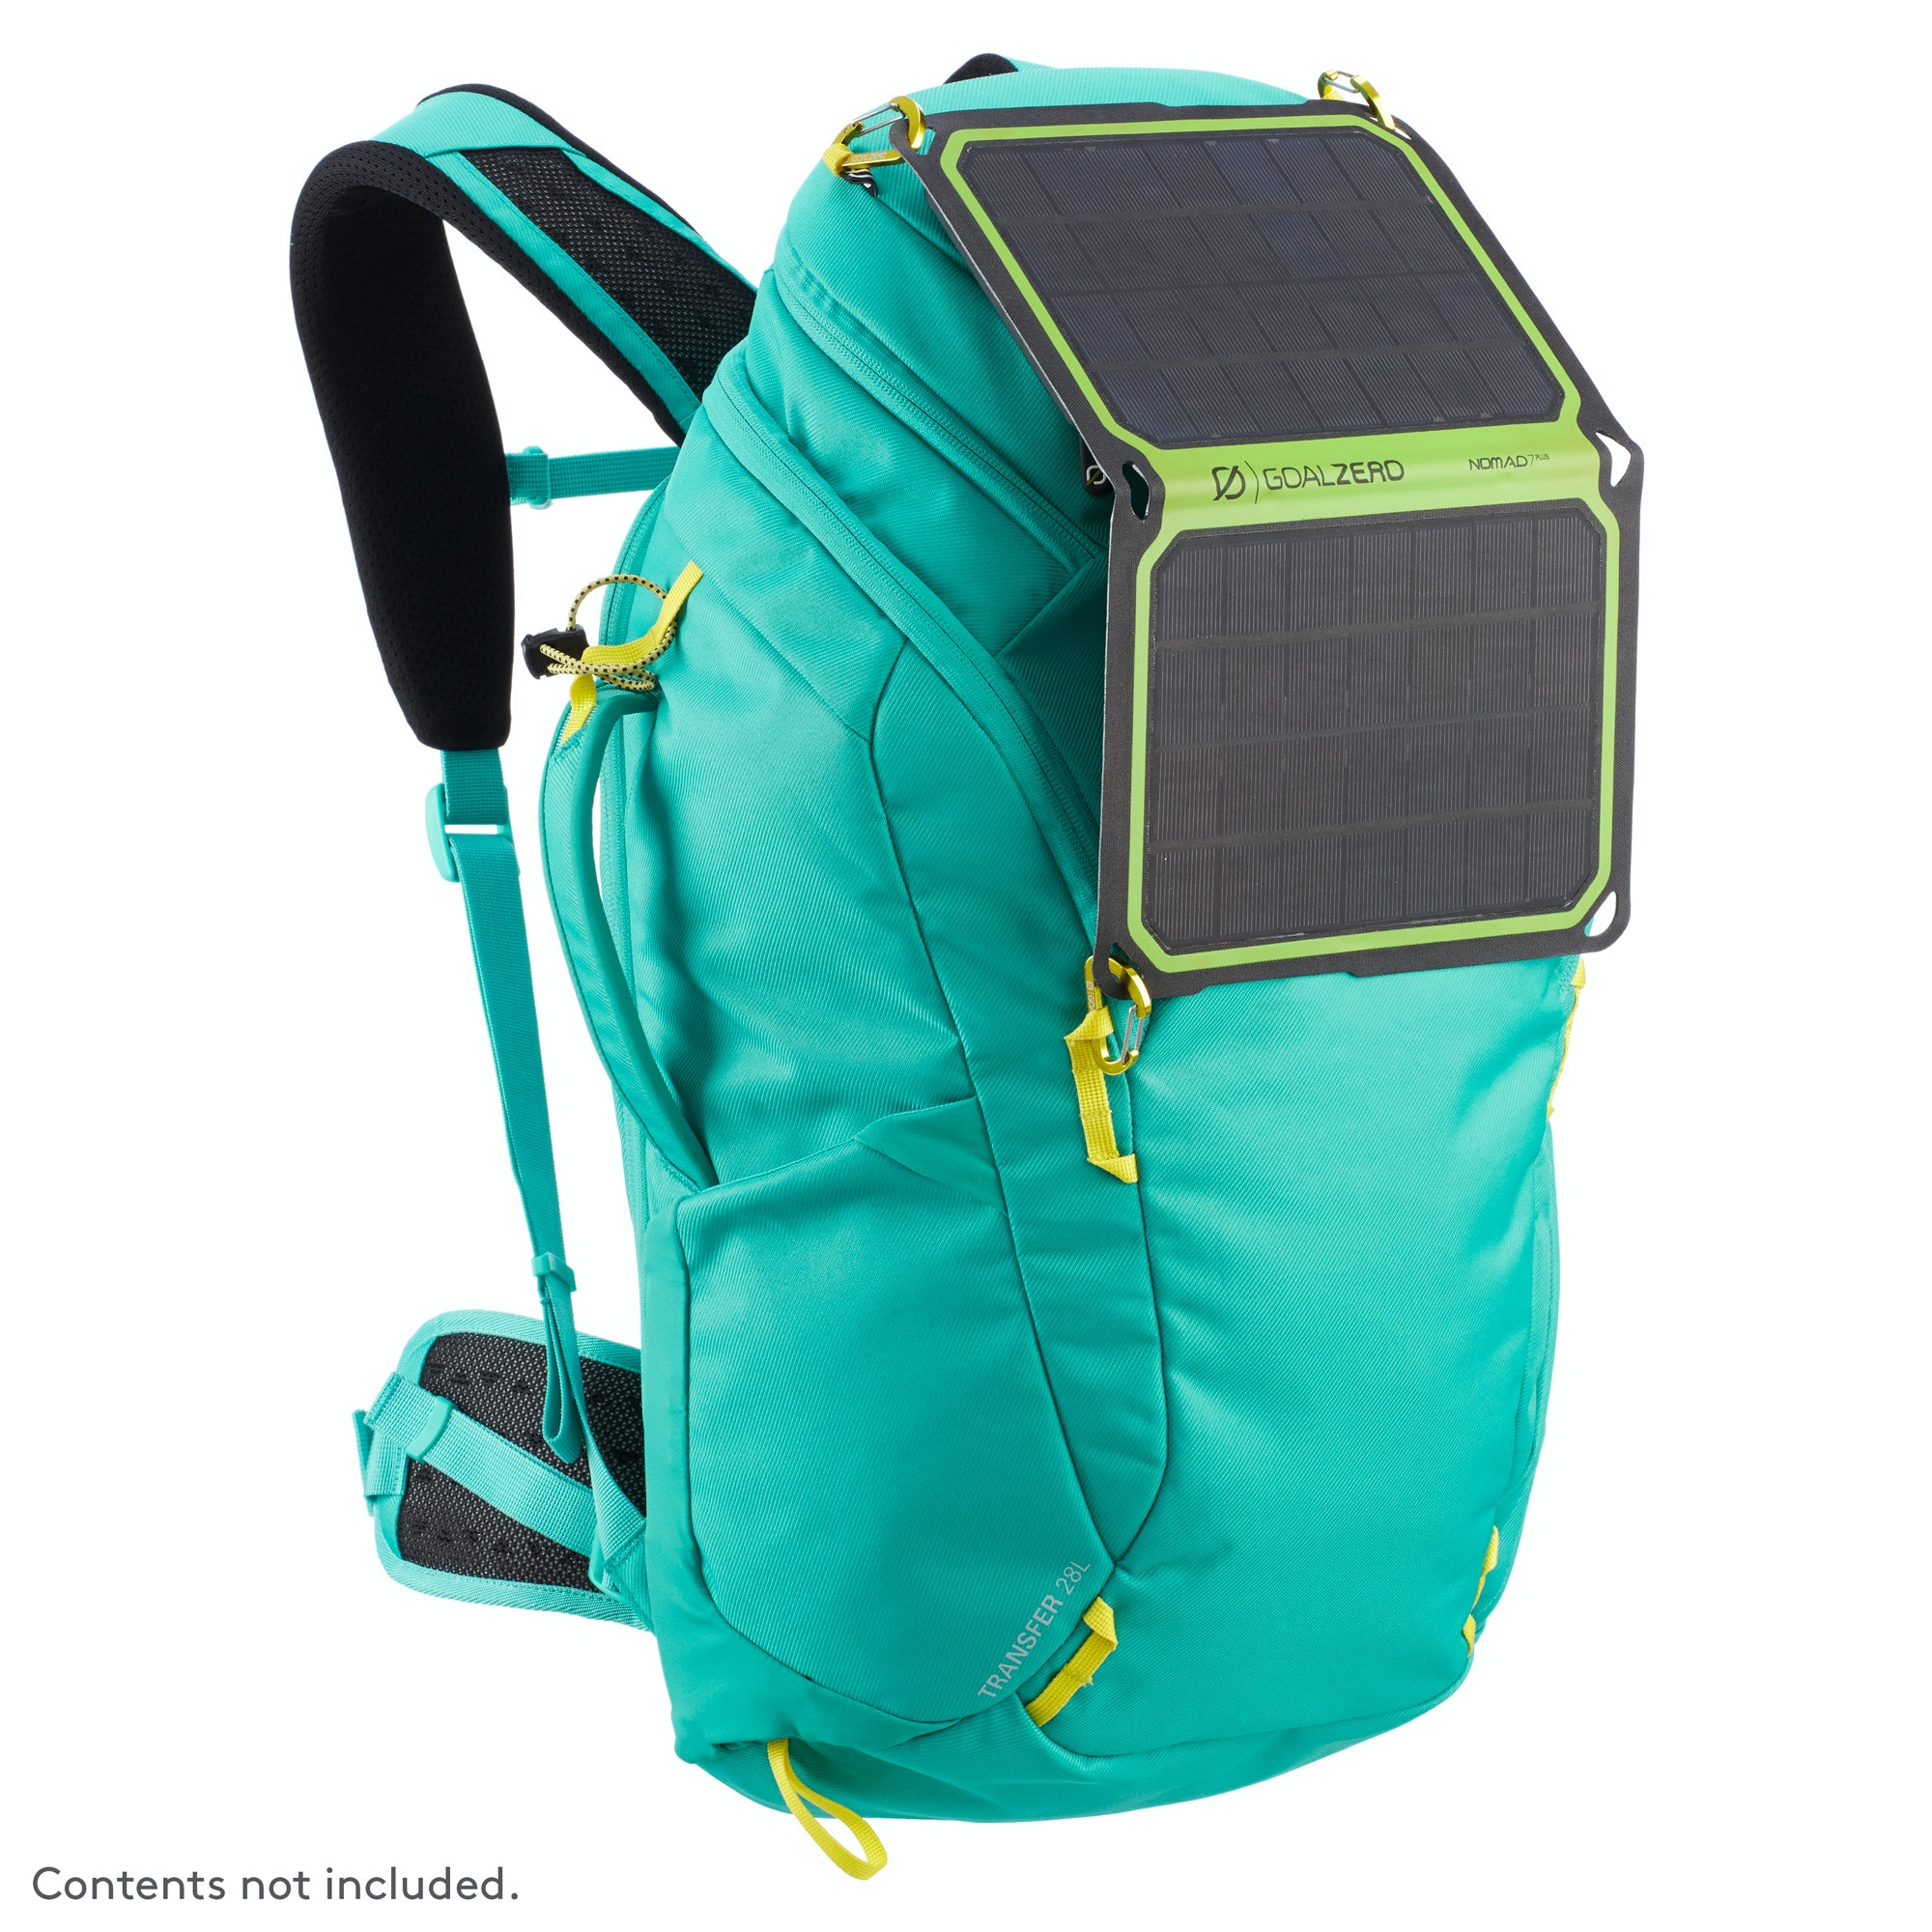 NEW-Kathmandu-Transfer-28L-Commuter-Bag-Laptop-Backpack-Rucksack-Travel-Pack-v3 thumbnail 13